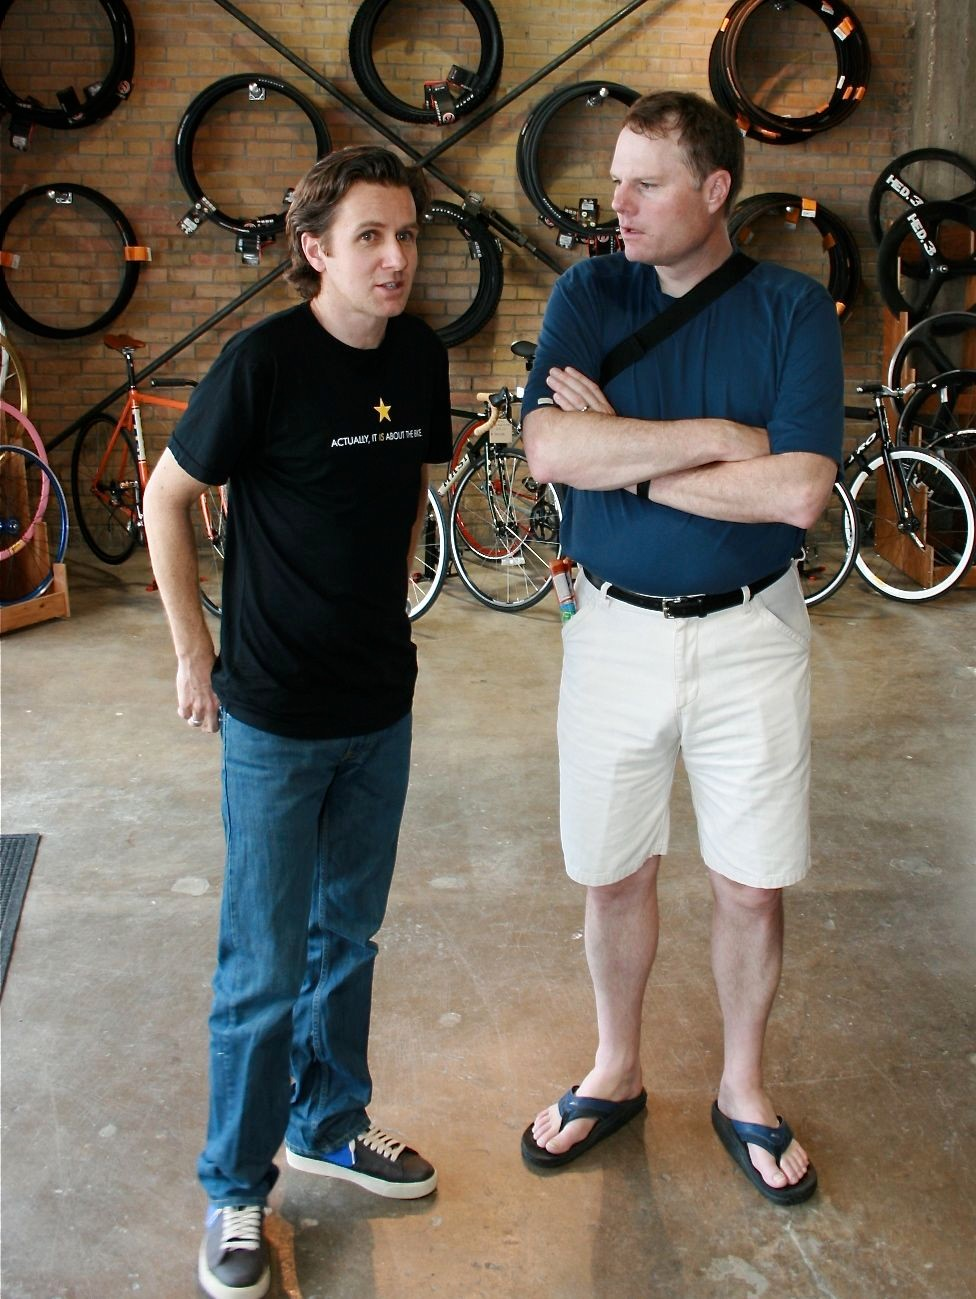 MJ manager Craig Staley and Trek president John Burke.